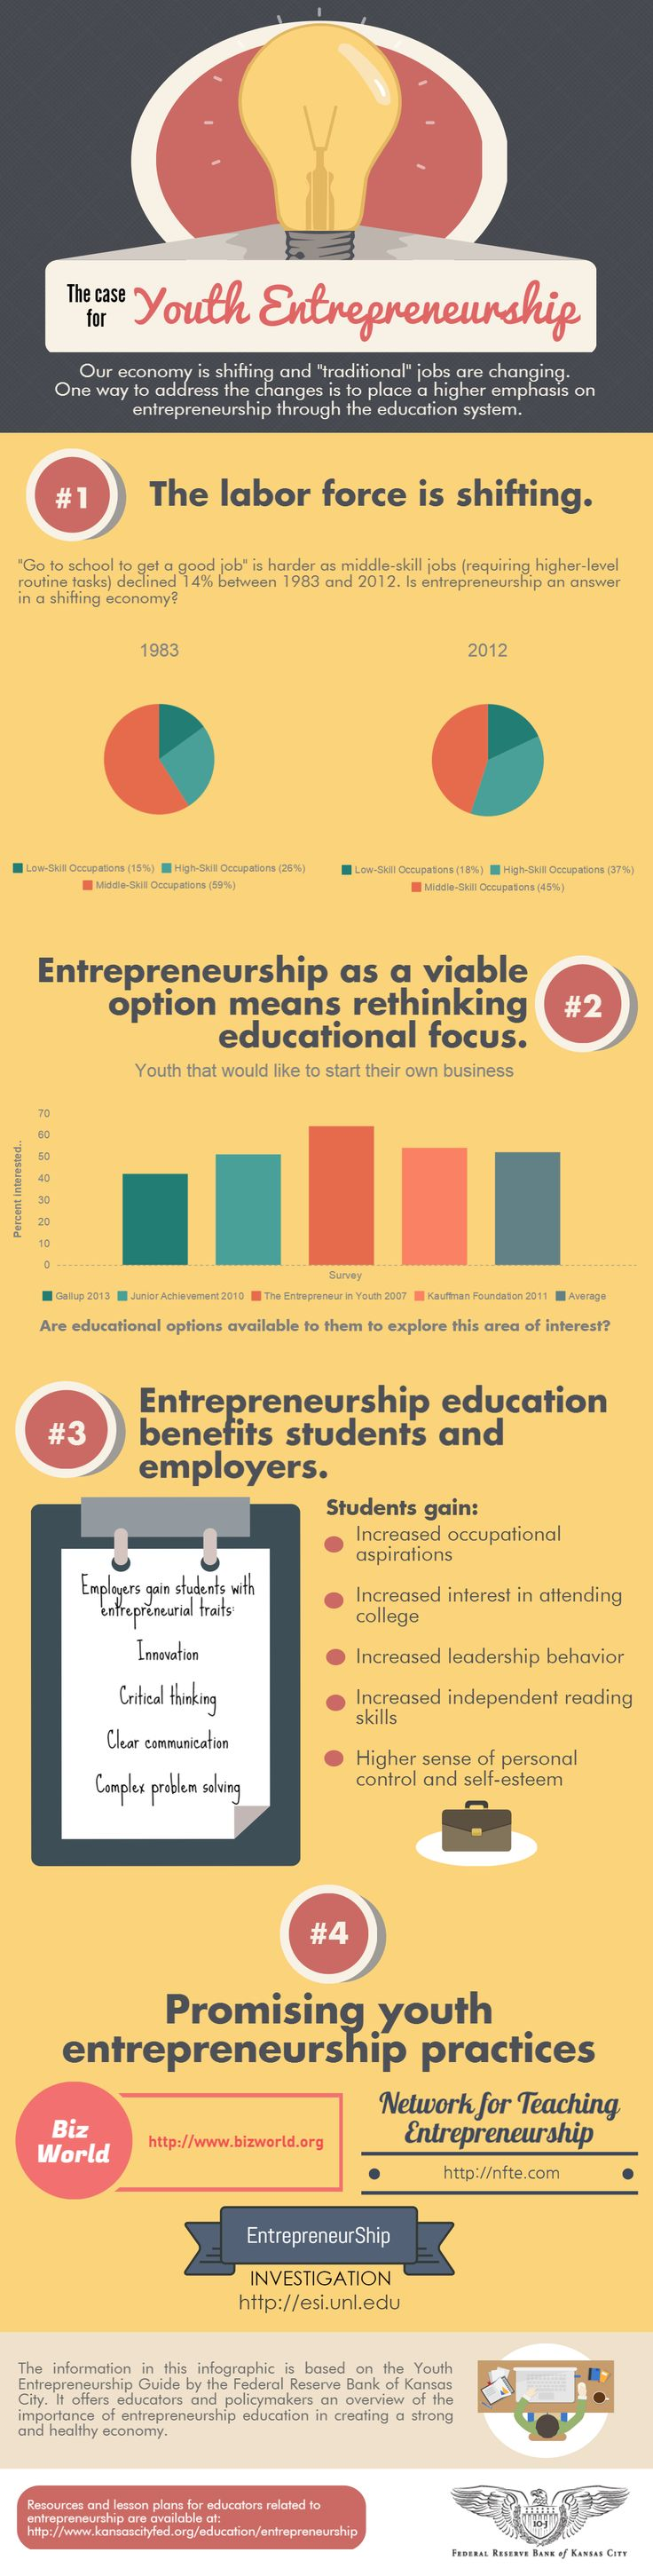 This guide provides more information on the importance of entrepreneurship education in creating a strong and healthy economy.